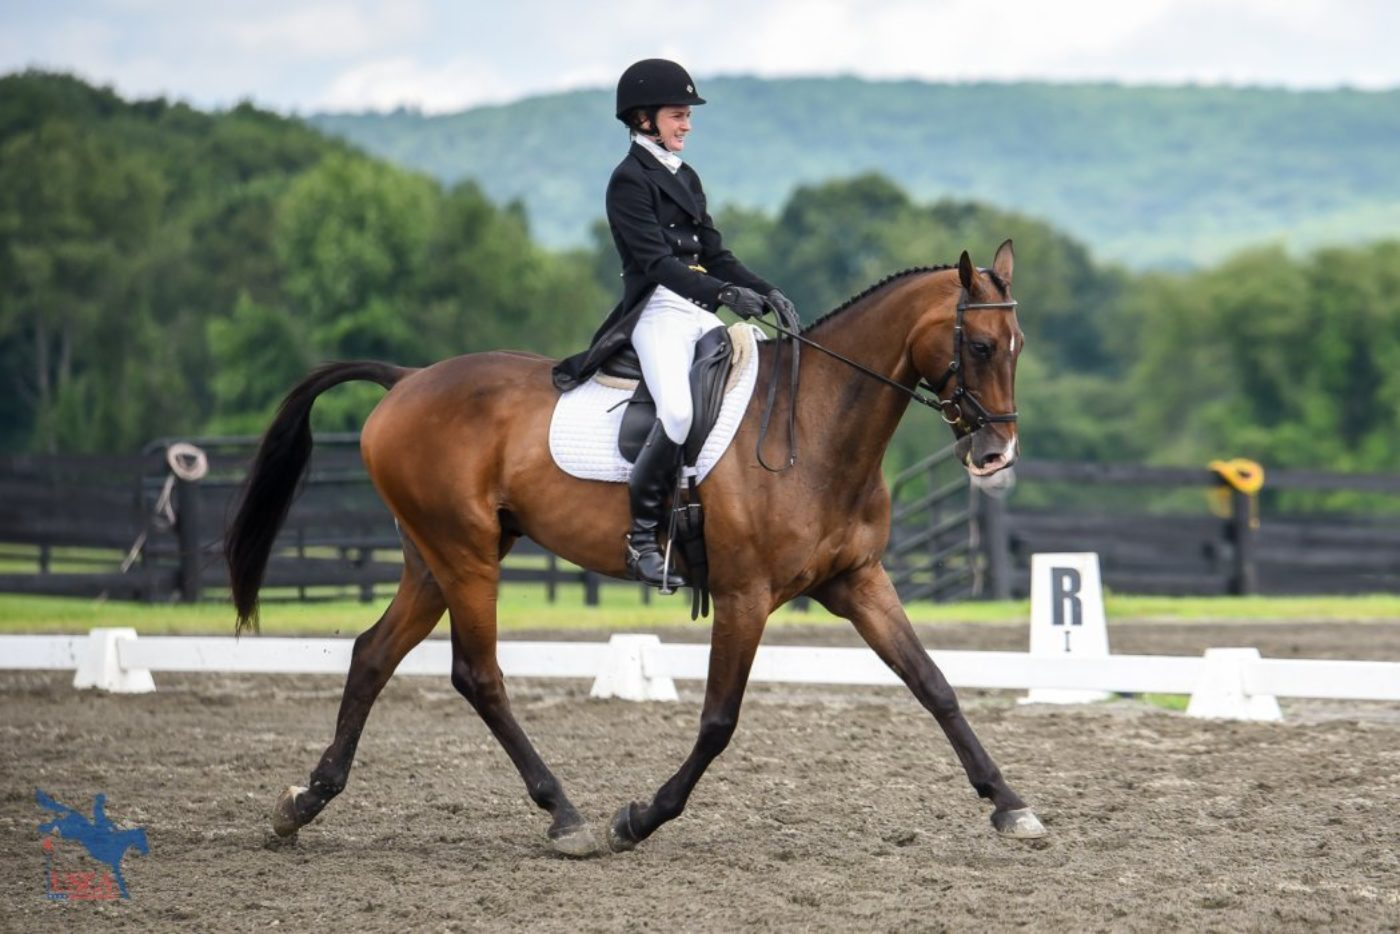 22nd - Kaitlin Clasing and Cartender de Nyze - 37.1